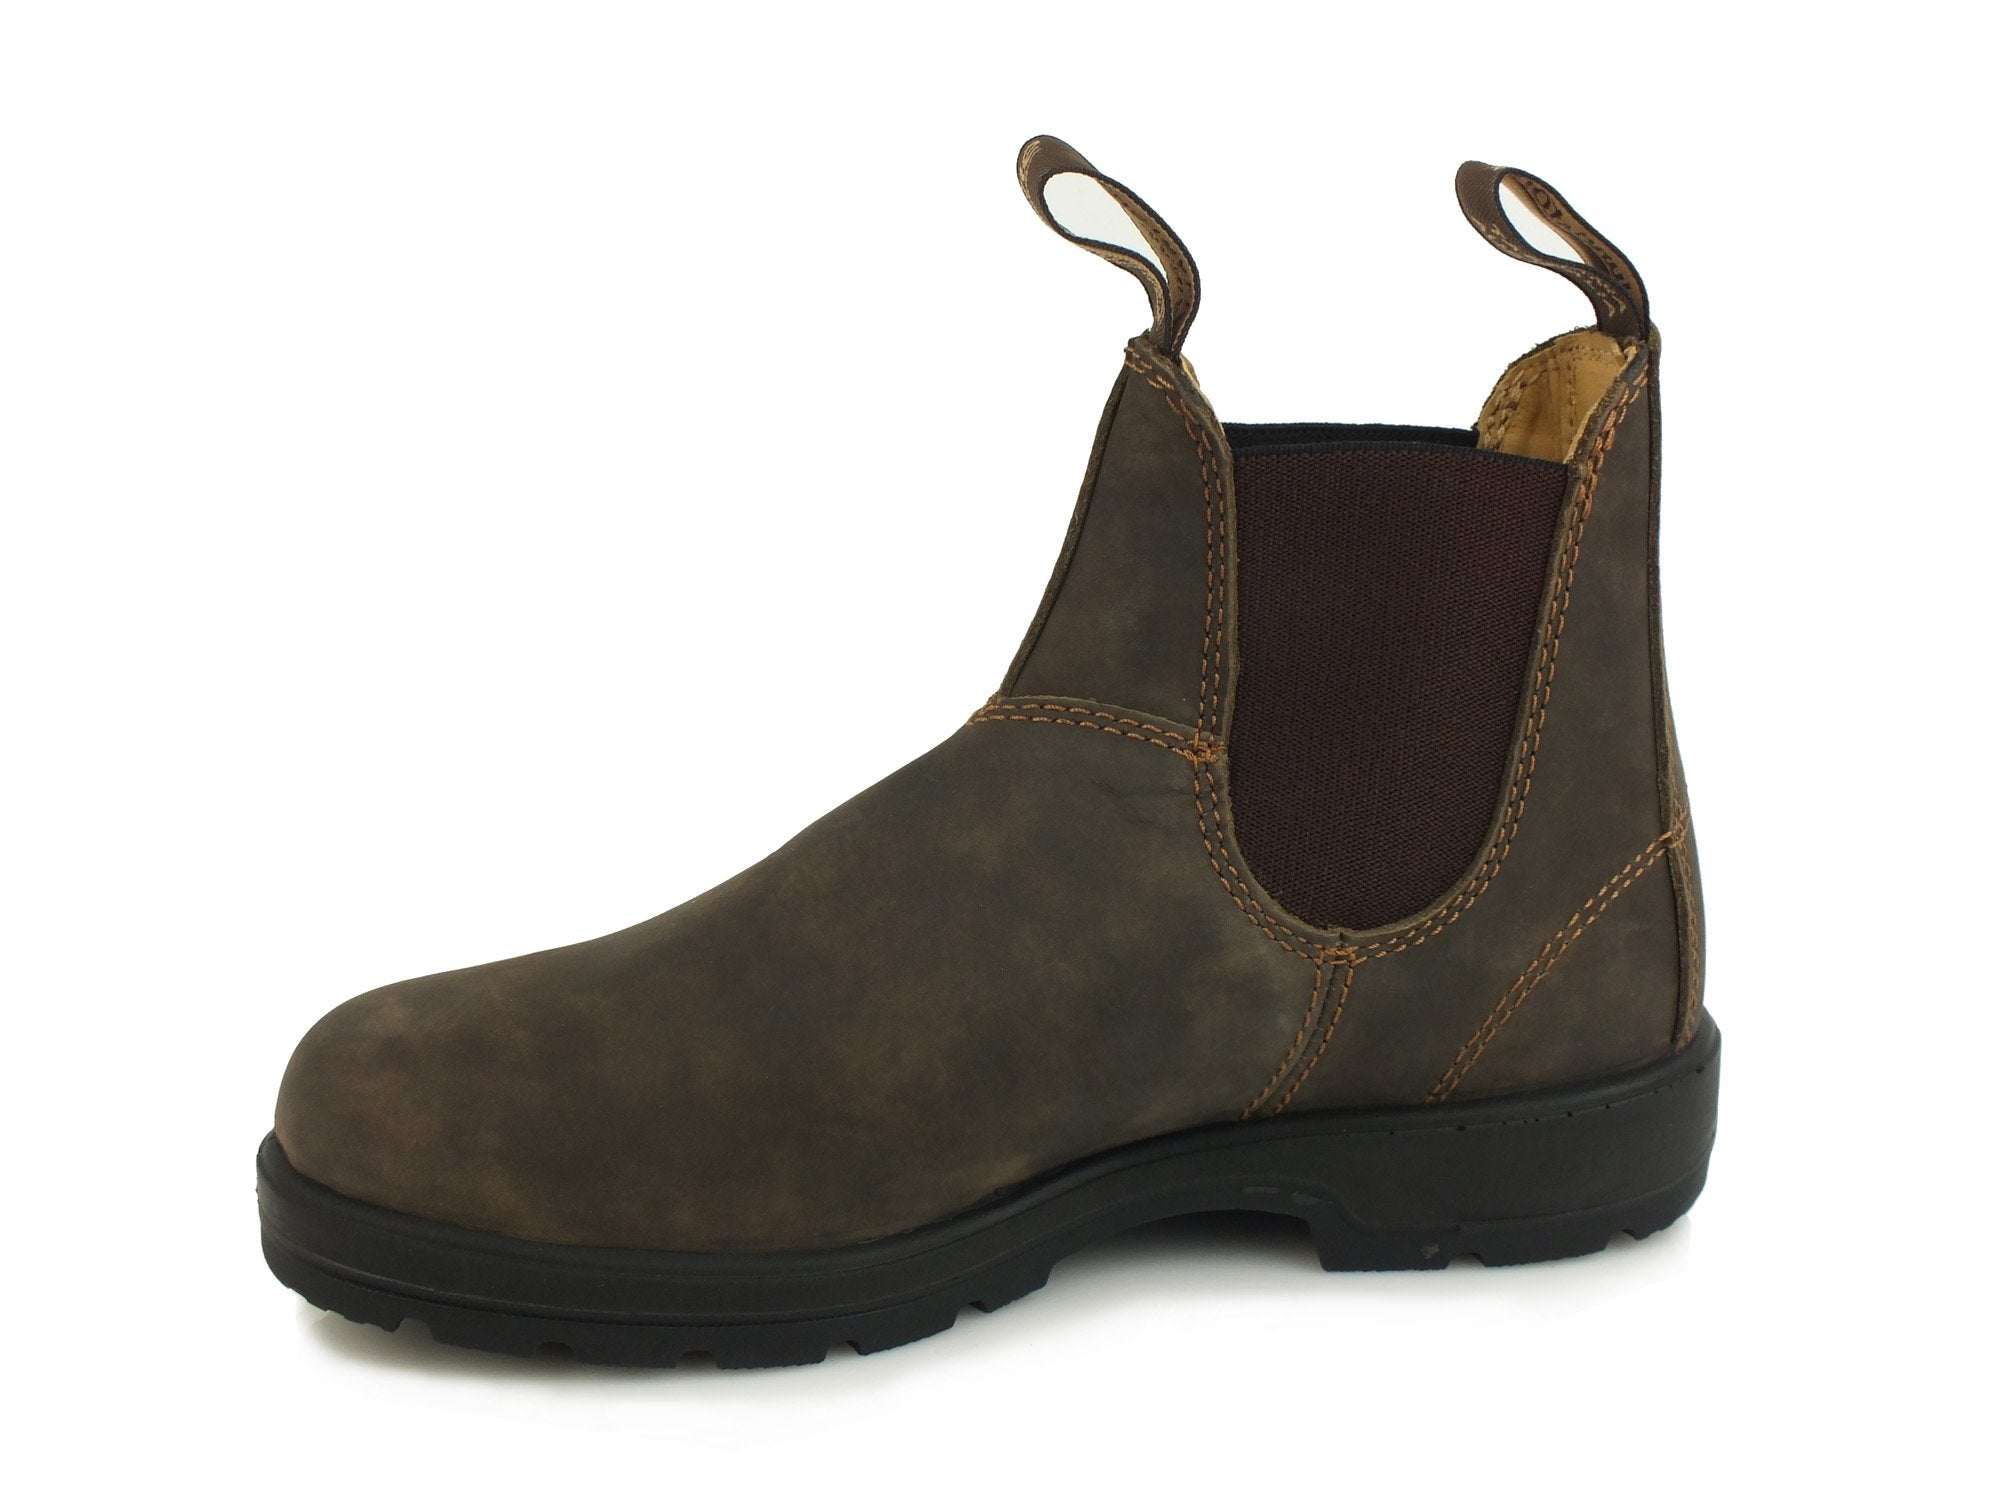 BLUNDSTONE 585 Stivaletto Rustic Brown